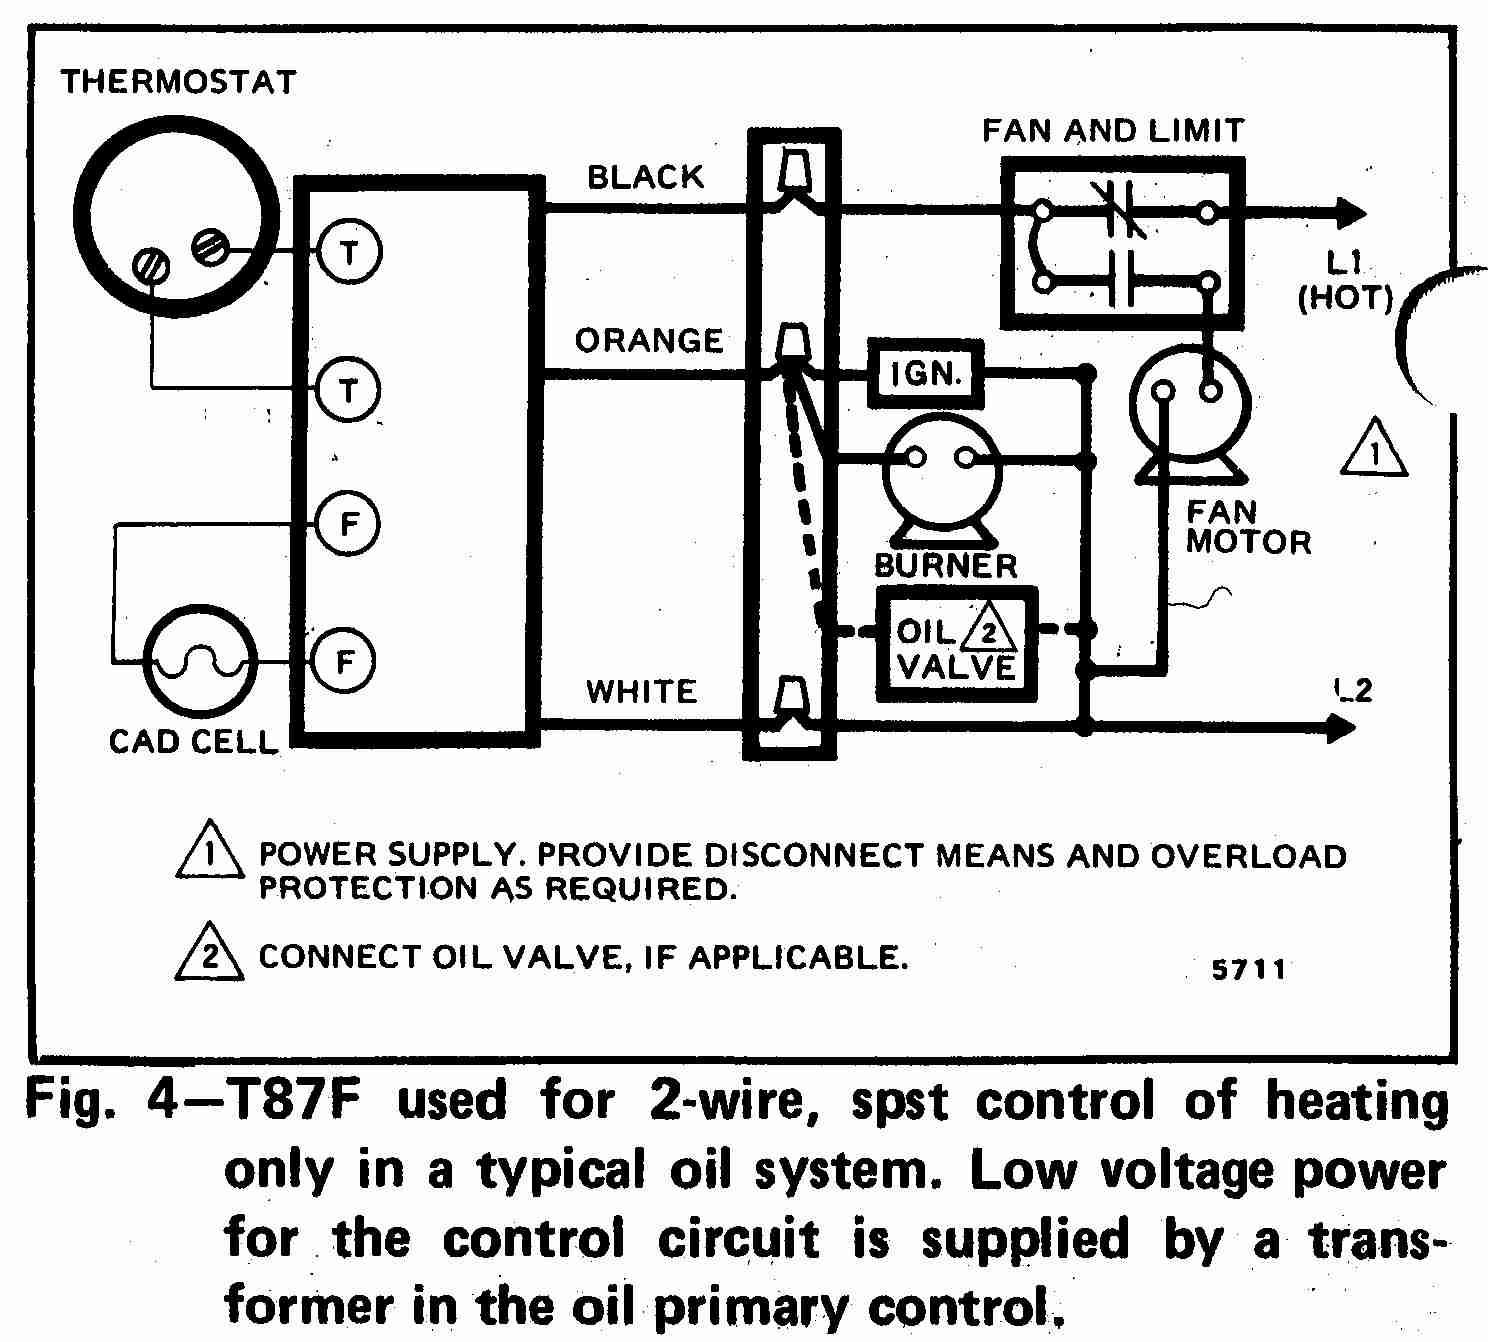 hight resolution of mr heater thermostat wiring diagram wiring diagram mr heater thermostat wiring diagram